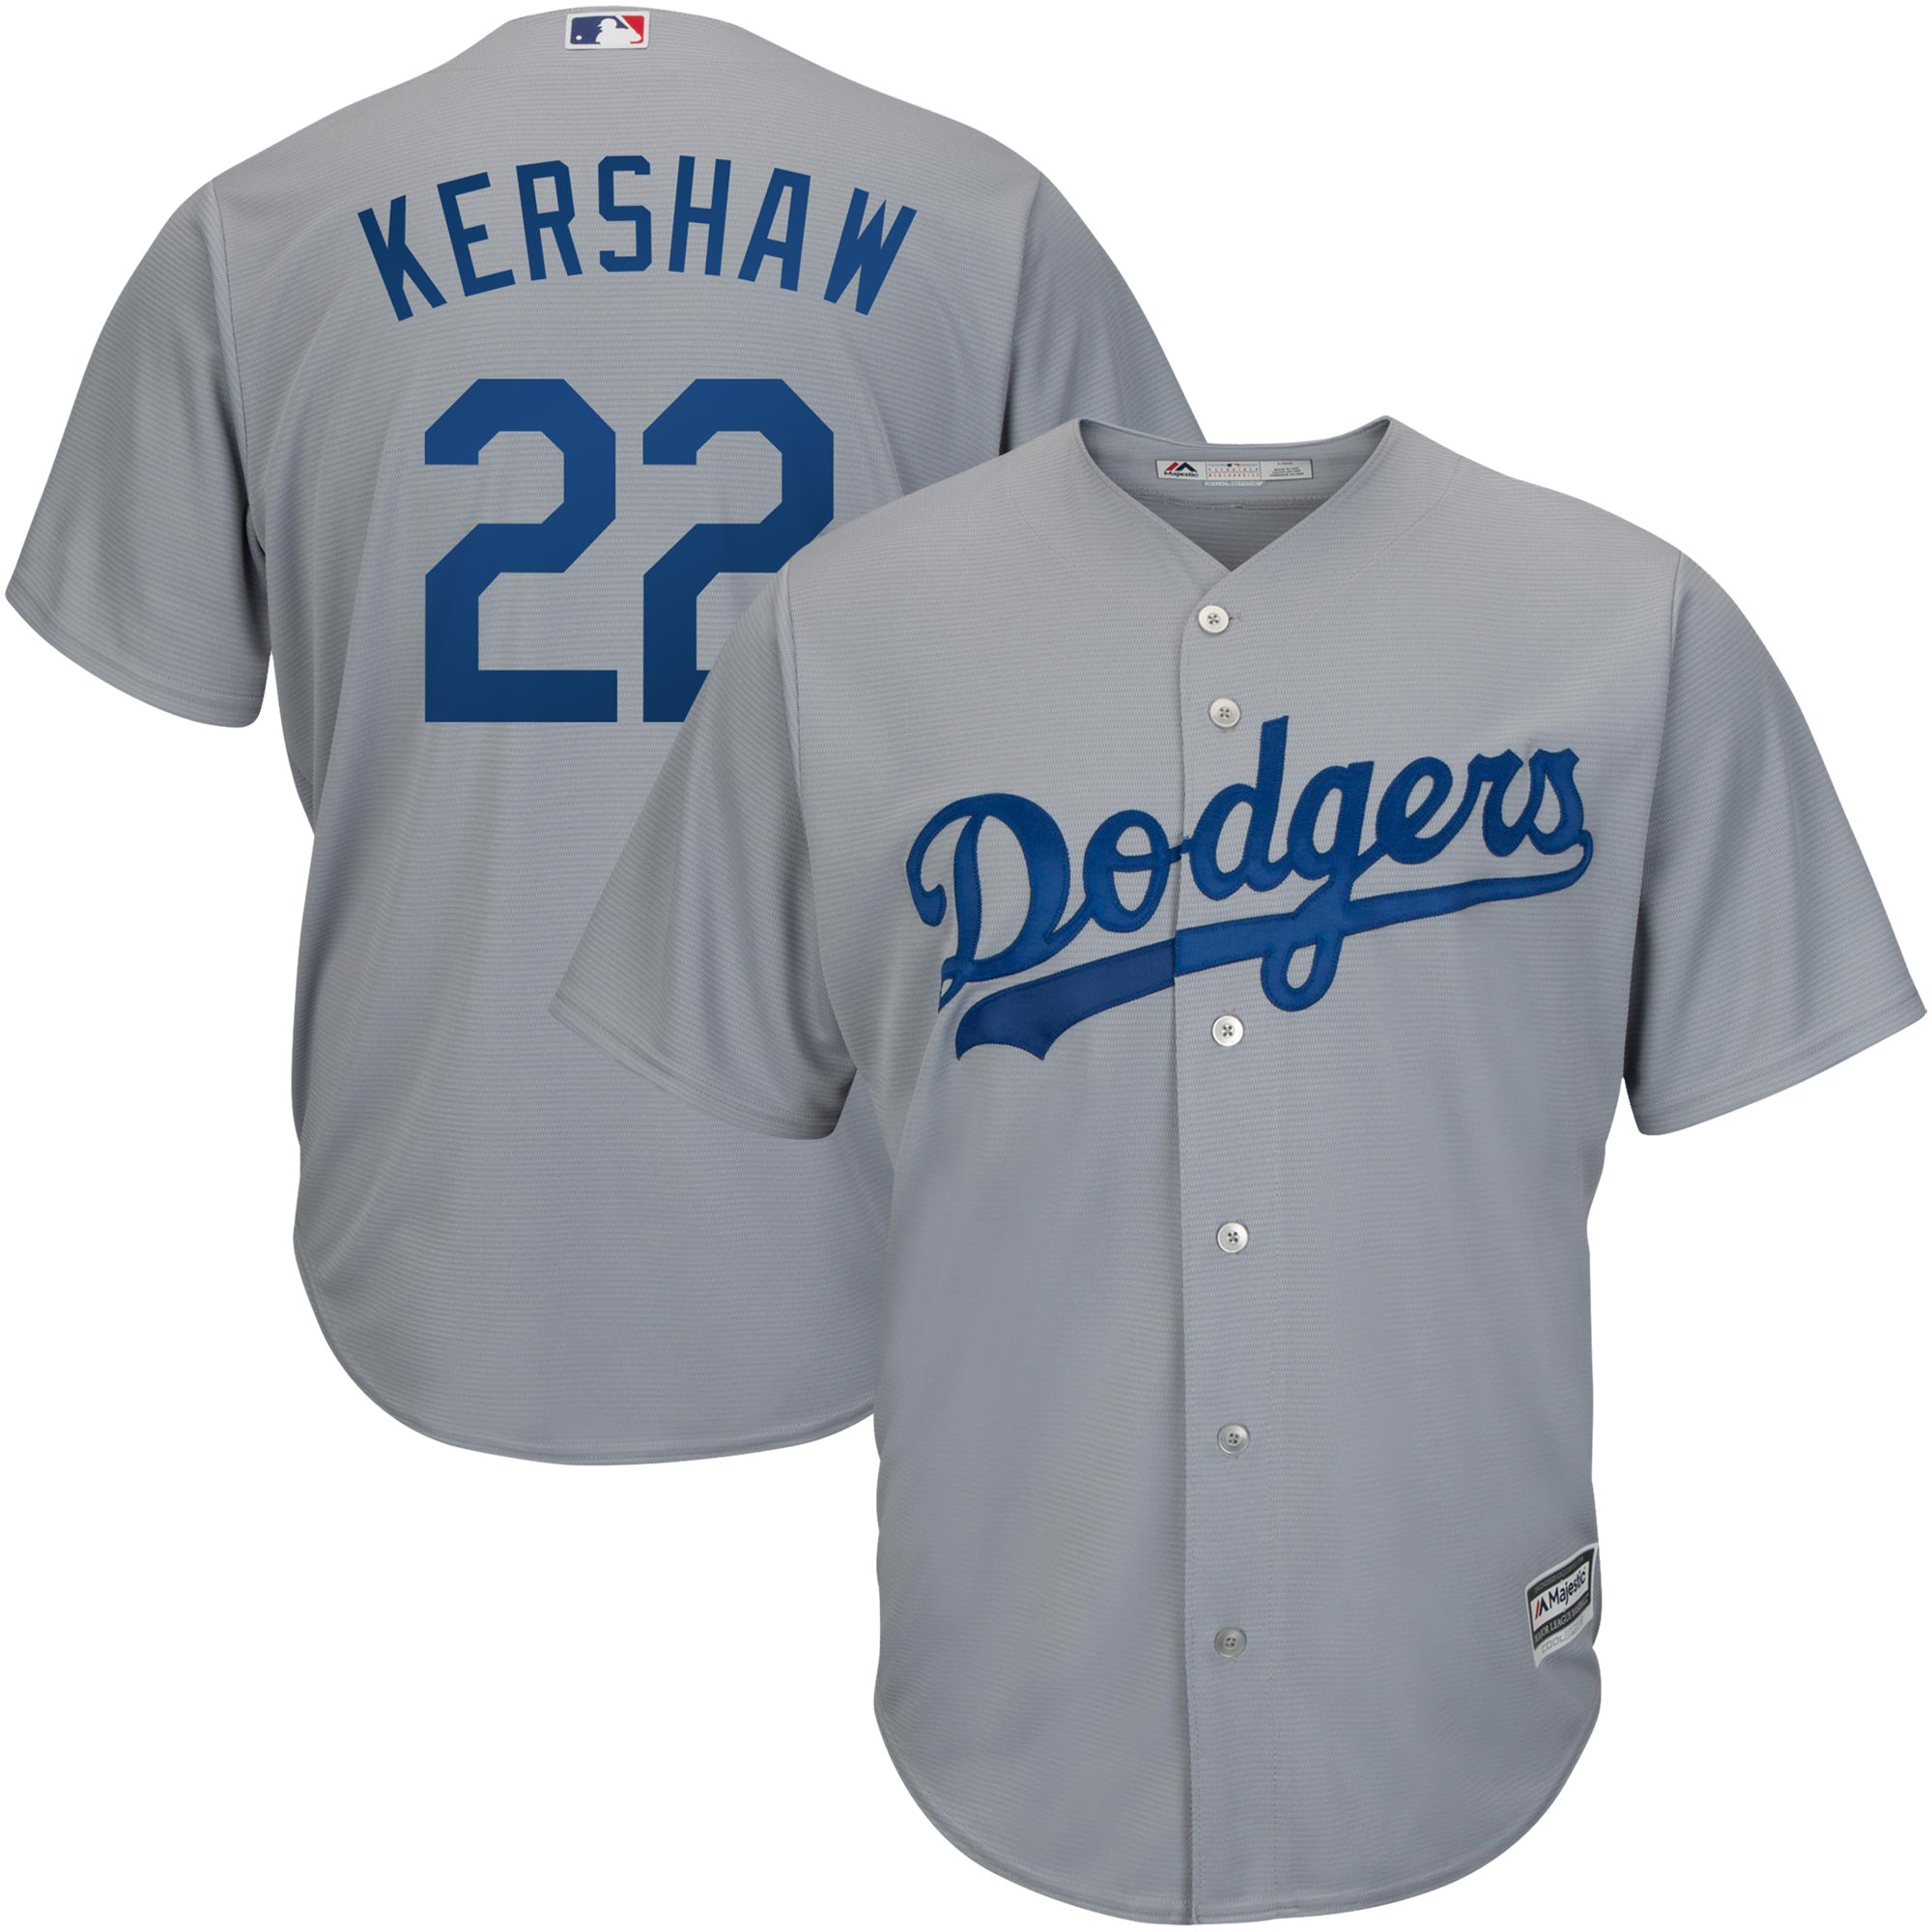 Clayton Kershaw Los Angeles Dodgers Majestic Road Official Cool Base Player  Replica Jersey - Gray - Walmart.com 15d8fead3b7